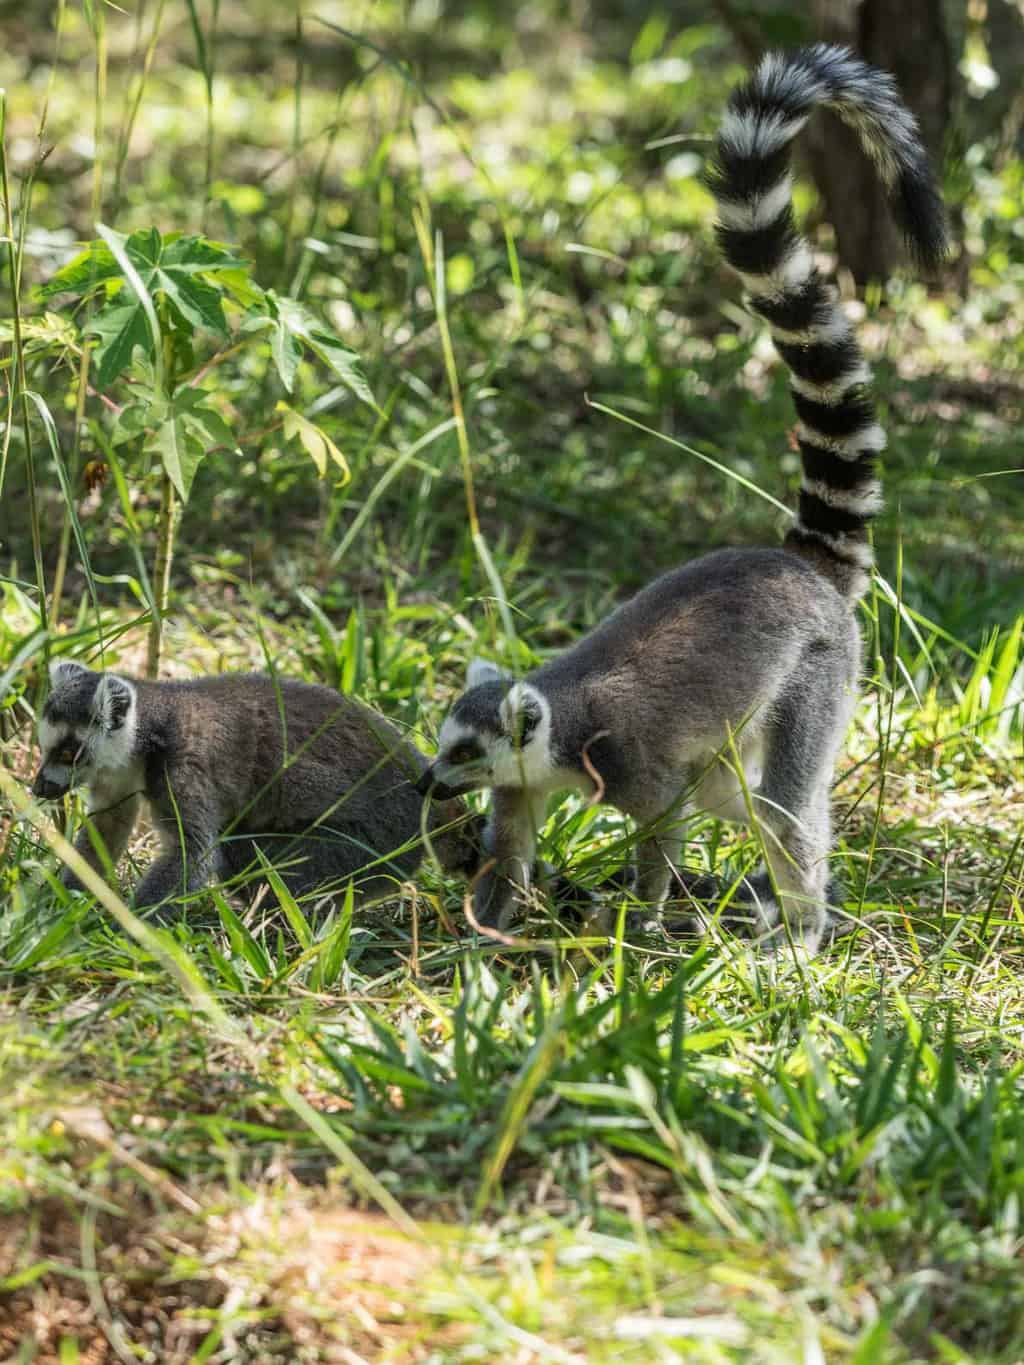 Probably the most famous of all Lemur species The Ring-tailed lemur in Madagascar